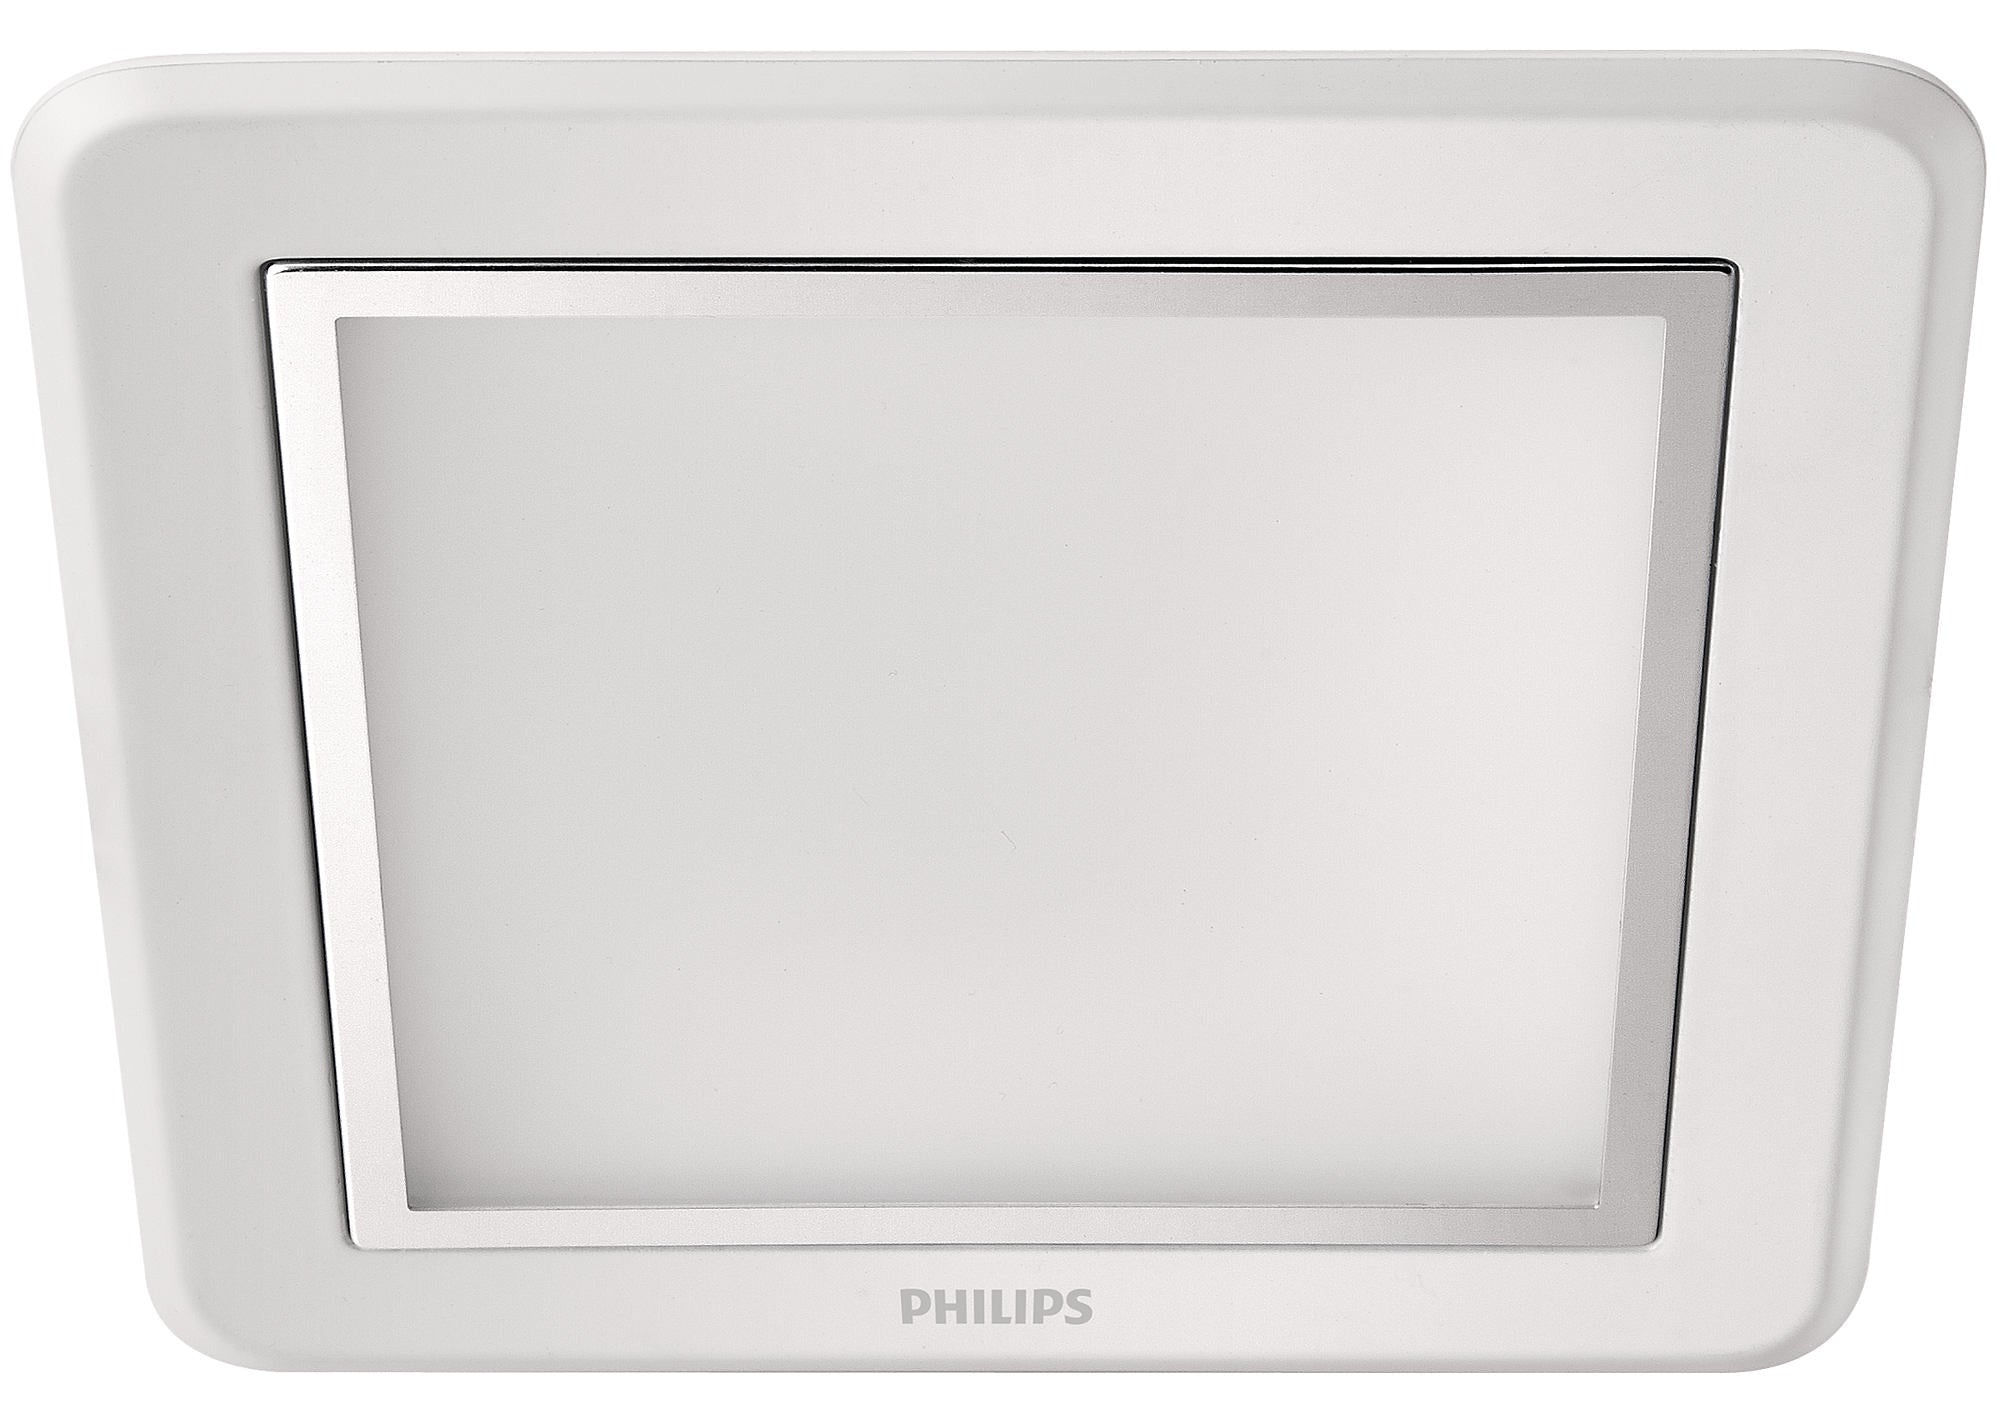 Philips LED Recessed Spot Light / Downlight (7W 2700K Warm White)